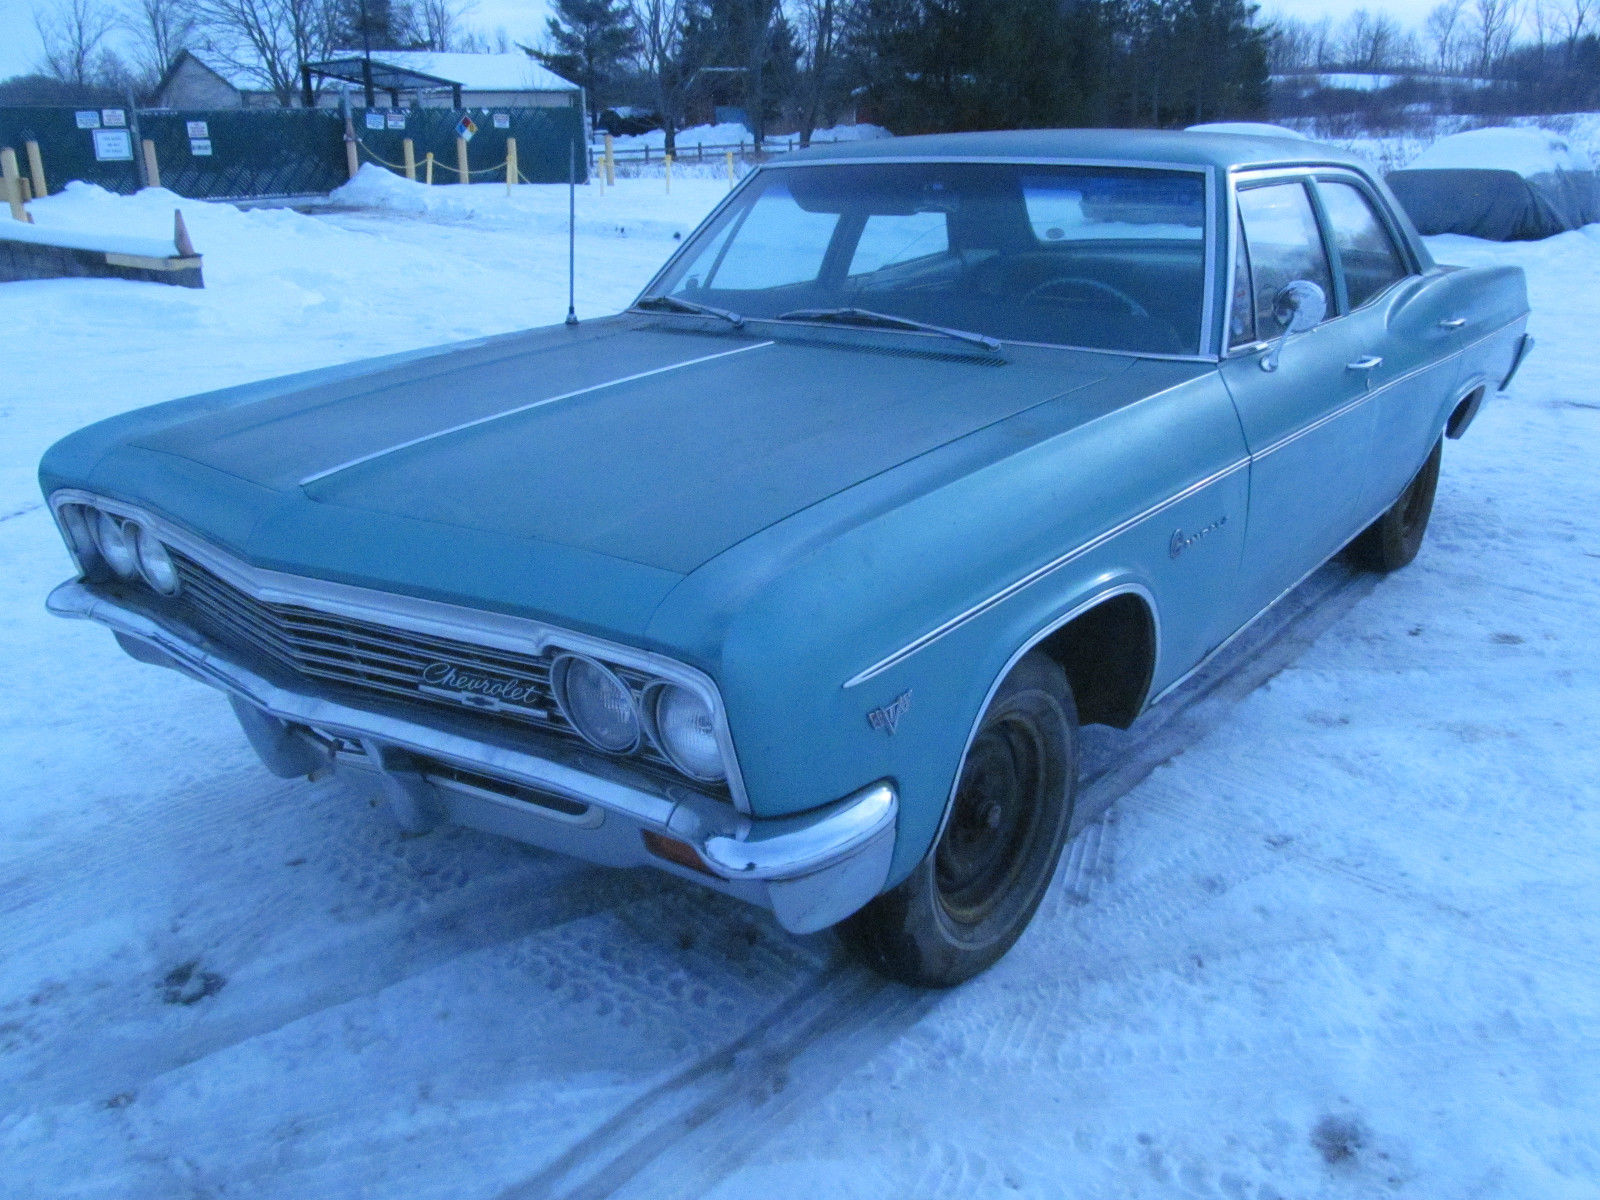 1966 Chevy Impala 4 Door Like 1967 Possible Supernatural Chevrolet Caprice 2